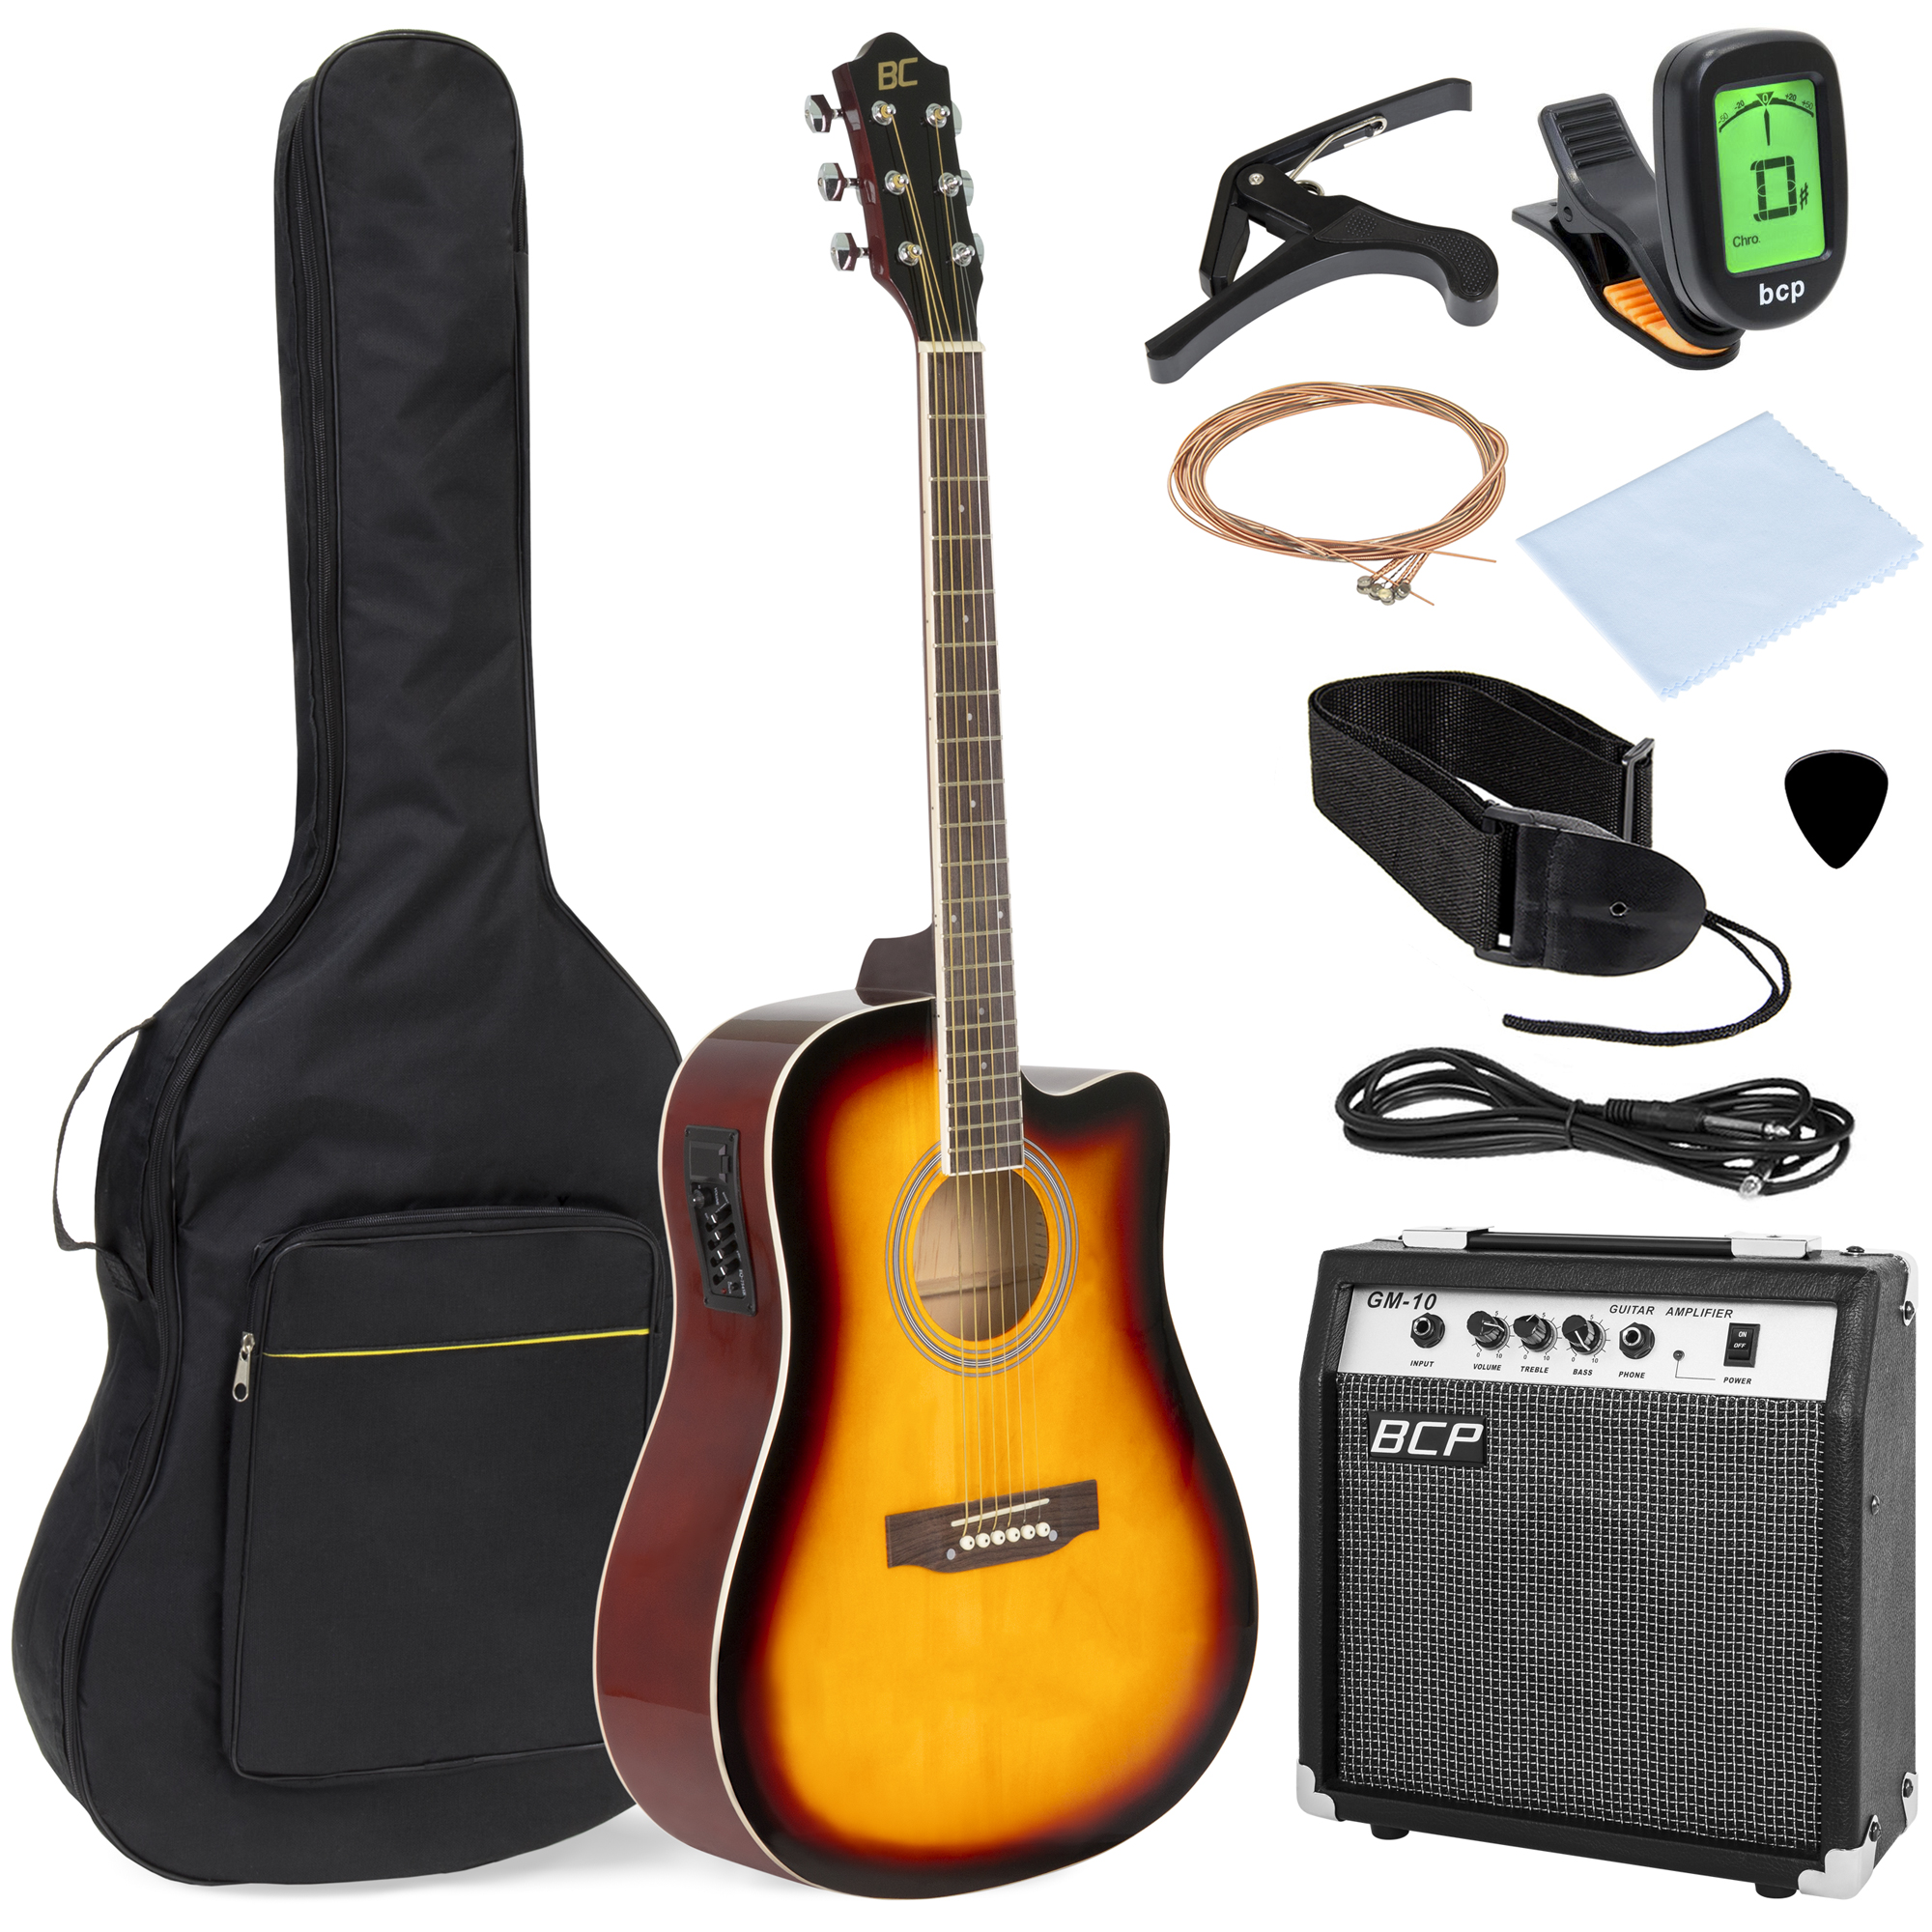 Best Choice Products 41in Full Size All-Wood Acoustic Electric Cutaway Guitar Musical Instrument Set Bundle w/ 10-Watt Amplifier, Capo, E-Tuner, Gig Bag, Strap, Picks, Extra Strings, Cloth - Sunburst